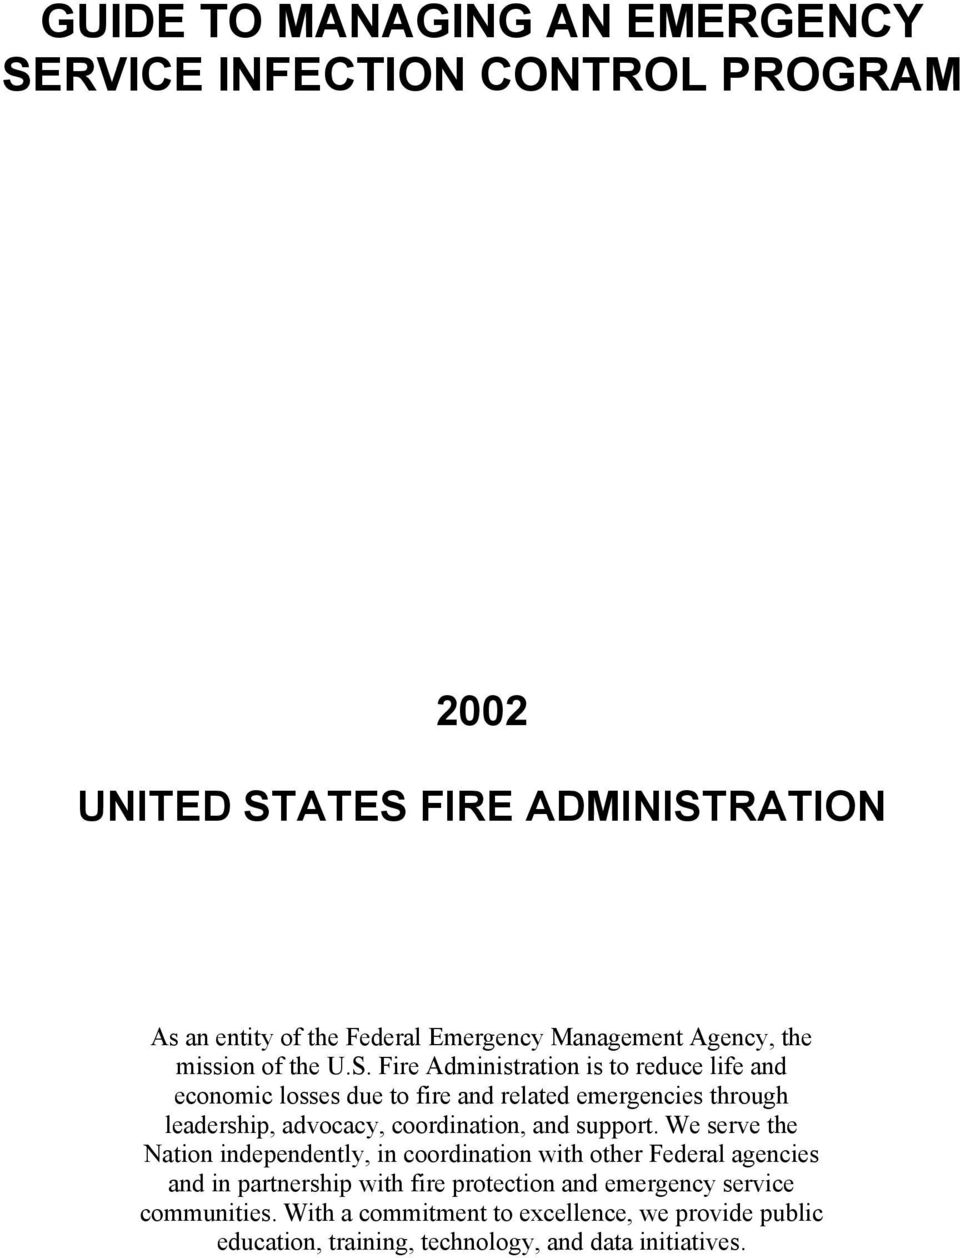 Fire Administration is to reduce life and economic losses due to fire and related emergencies through leadership, advocacy, coordination, and